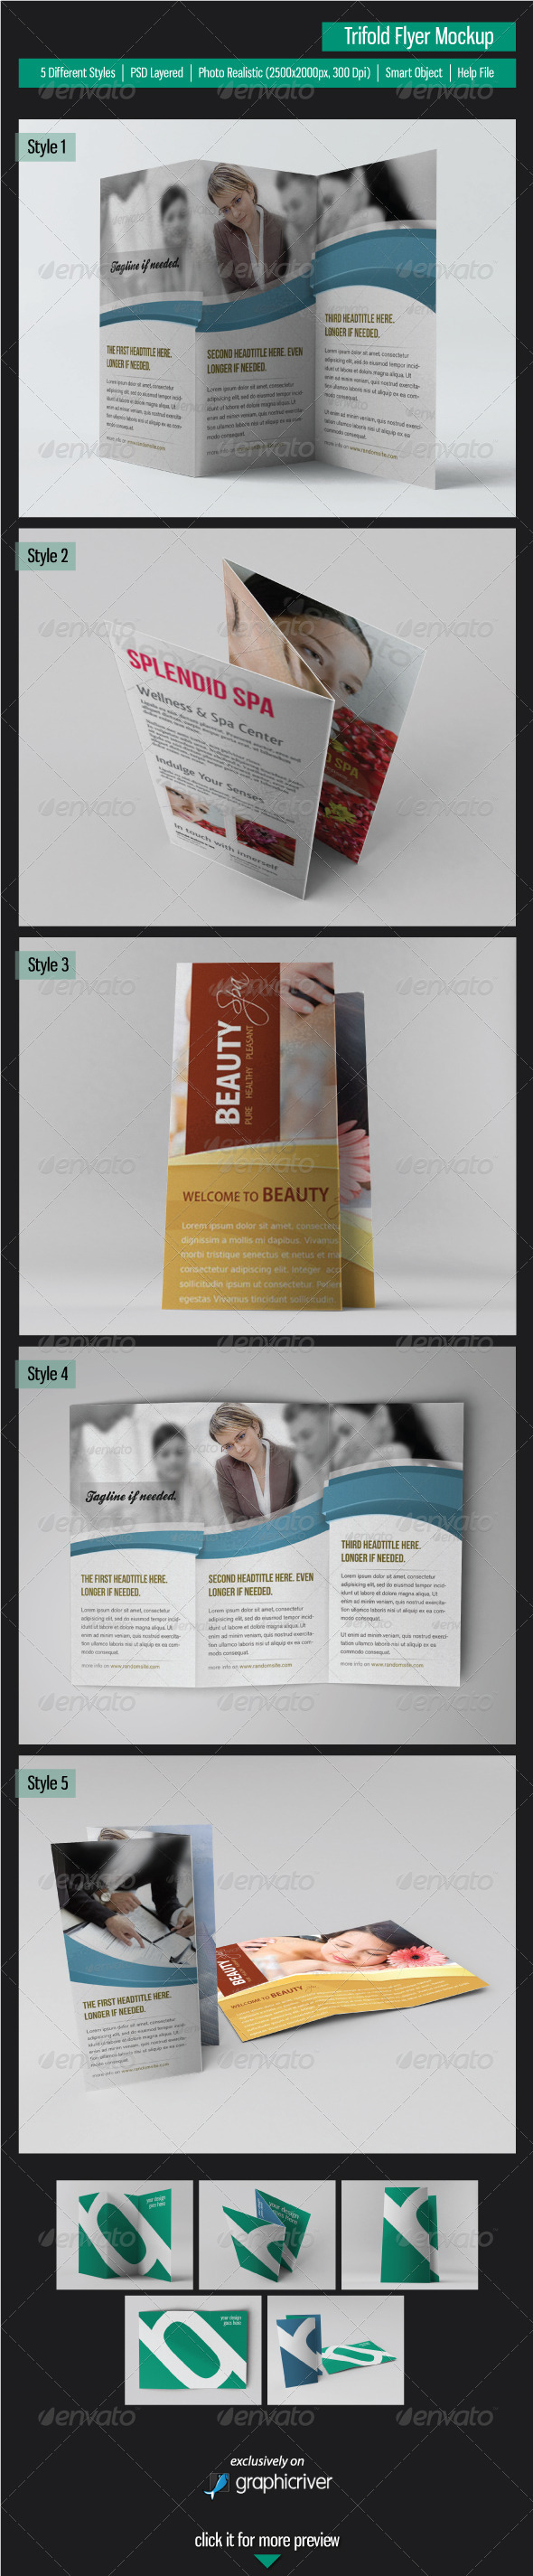 GraphicRiver Trifold Flyer Mockup 3856678